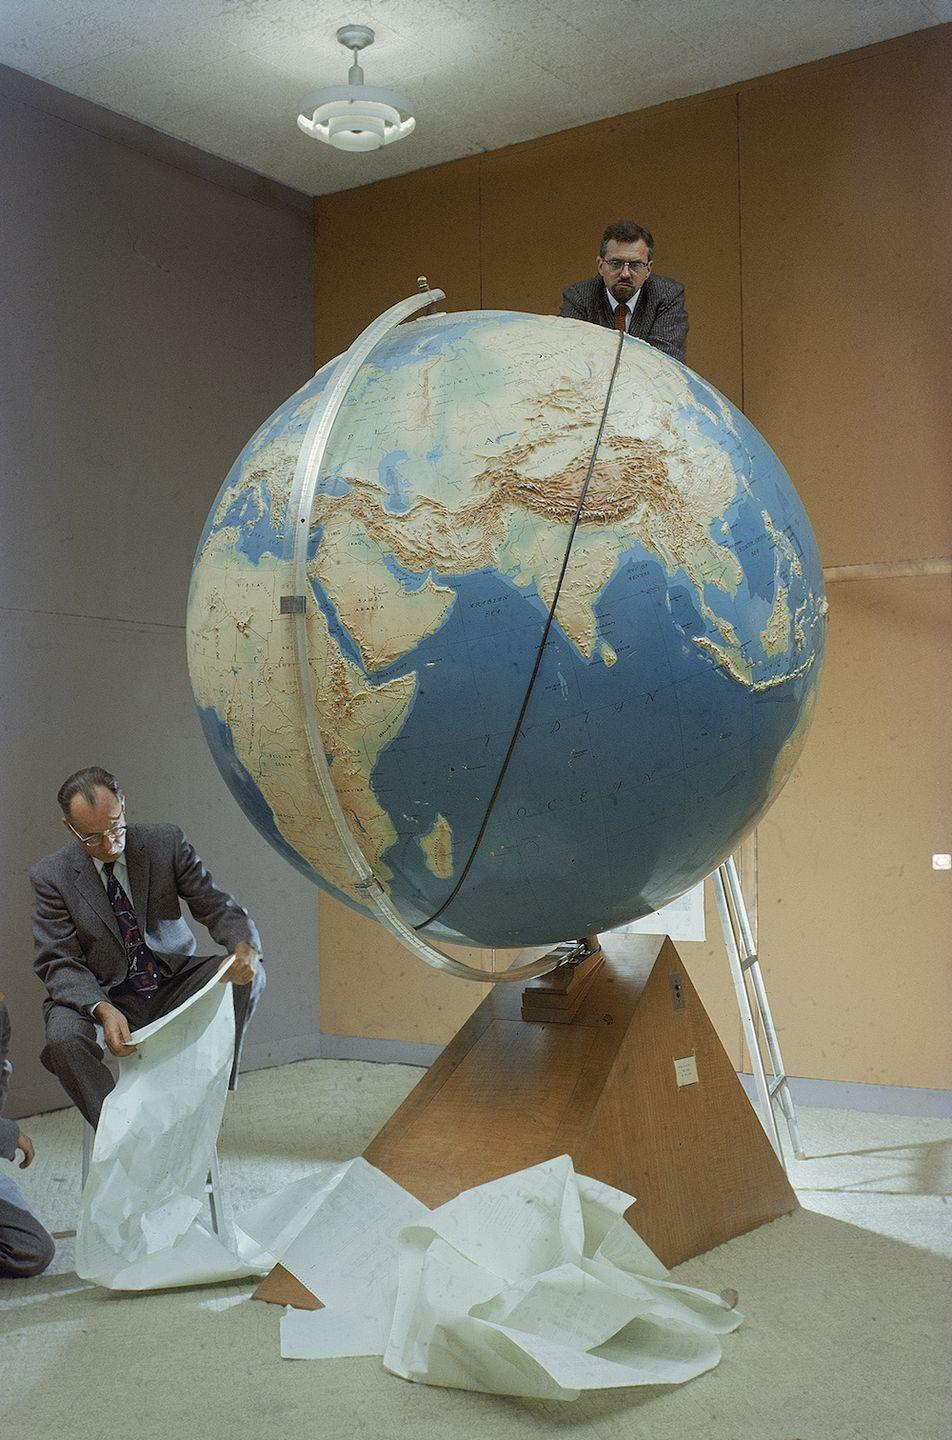 "<p>On October 19, the Soviet Union <a href=""https://www.sciencenews.org/article/90th-anniversary-issue-1950s"" rel=""nofollow noopener"" target=""_blank"" data-ylk=""slk:sends up Sputnik 1"" class=""link rapid-noclick-resp"">sends up Sputnik 1</a>. Here, Smithsonian Astrophysical Observatory scientists Dr. J. Allen Hynek and Dr. Fred Whipple plot the orbit of the satellite. </p>"